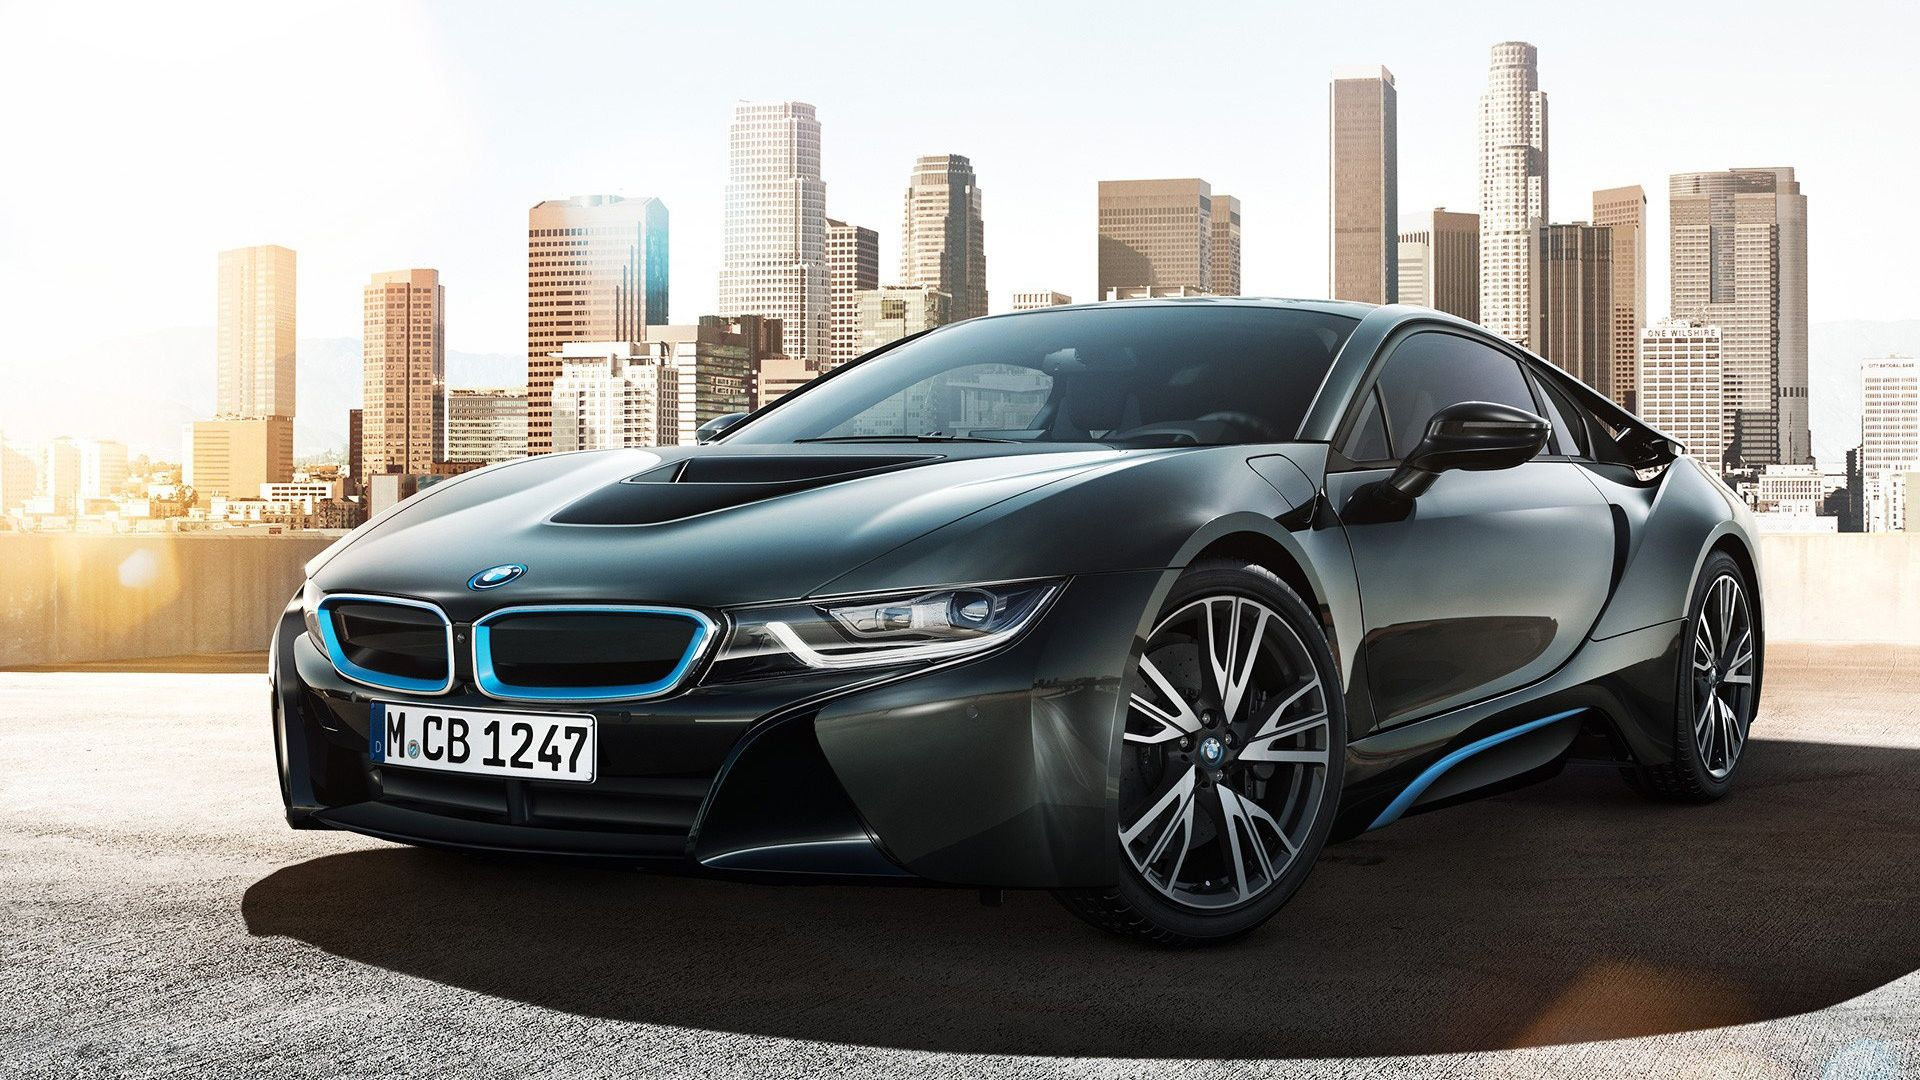 Free download pure 100 bmw hd wallpapers latest - Bmw cars wallpapers hd free download ...